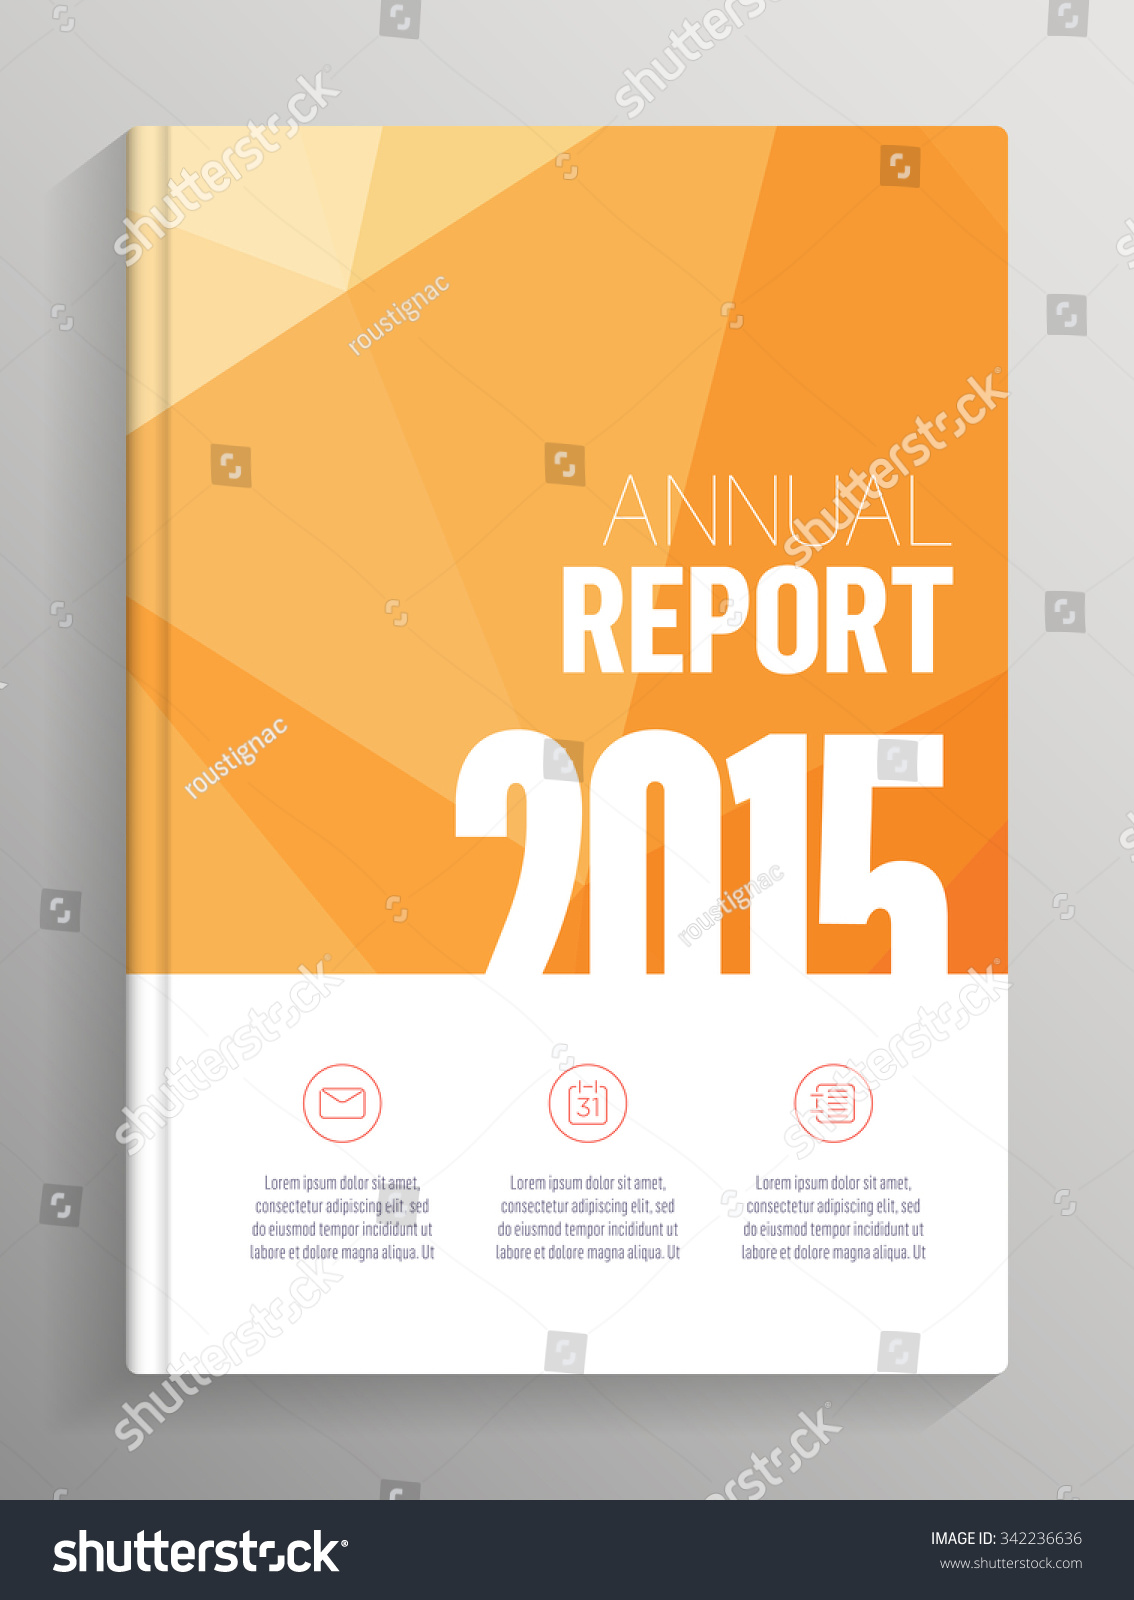 annual report 2015 cover low poly stock vektor 342236636 annual report 2015 cover low poly cover layout for books brochures flyers